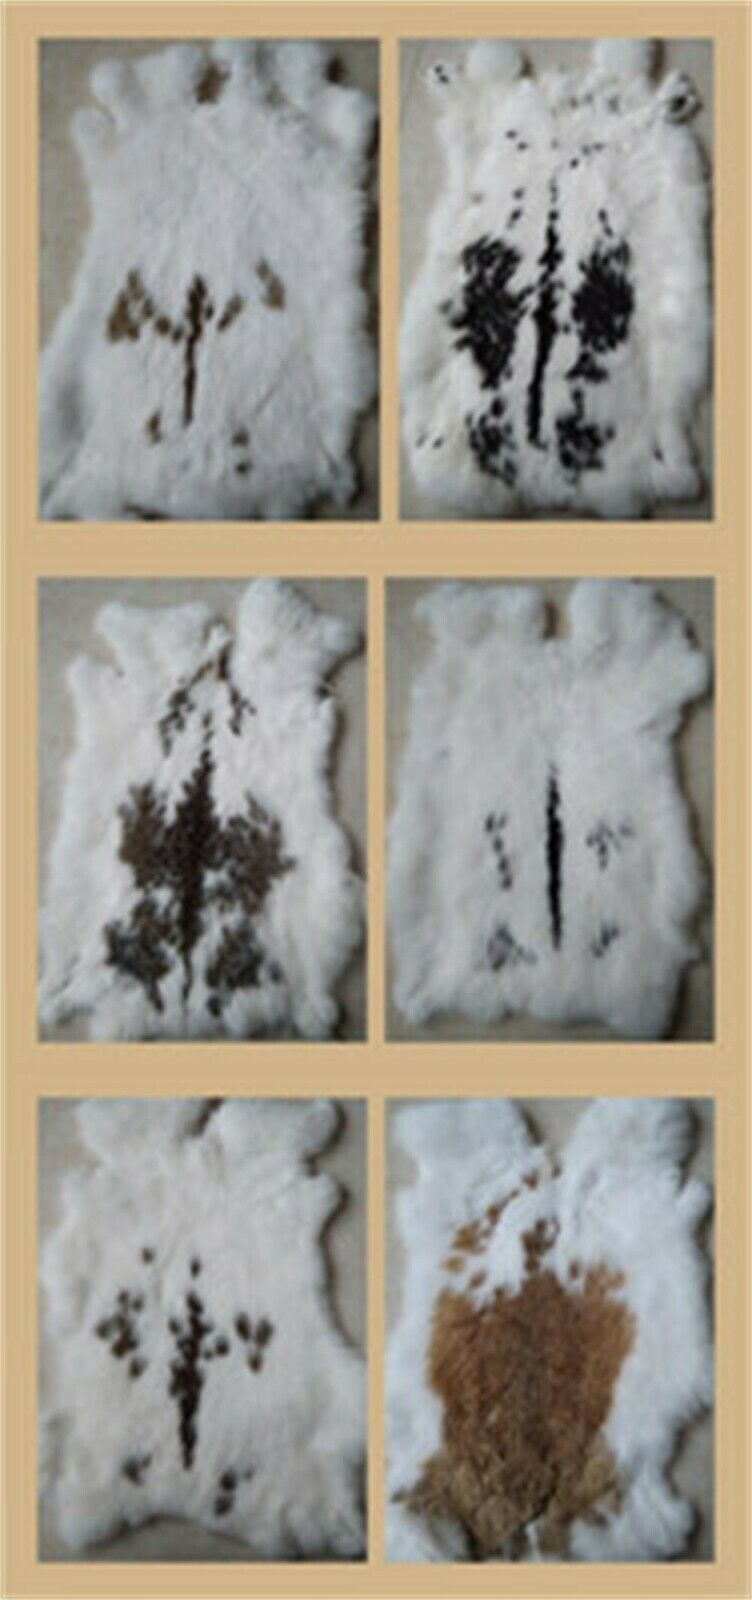 1X Spotted RABBIT FUR PELTS TANNED Gray CRAFTS Leather Fur EXCELLANT FOR SEWING - $4.99